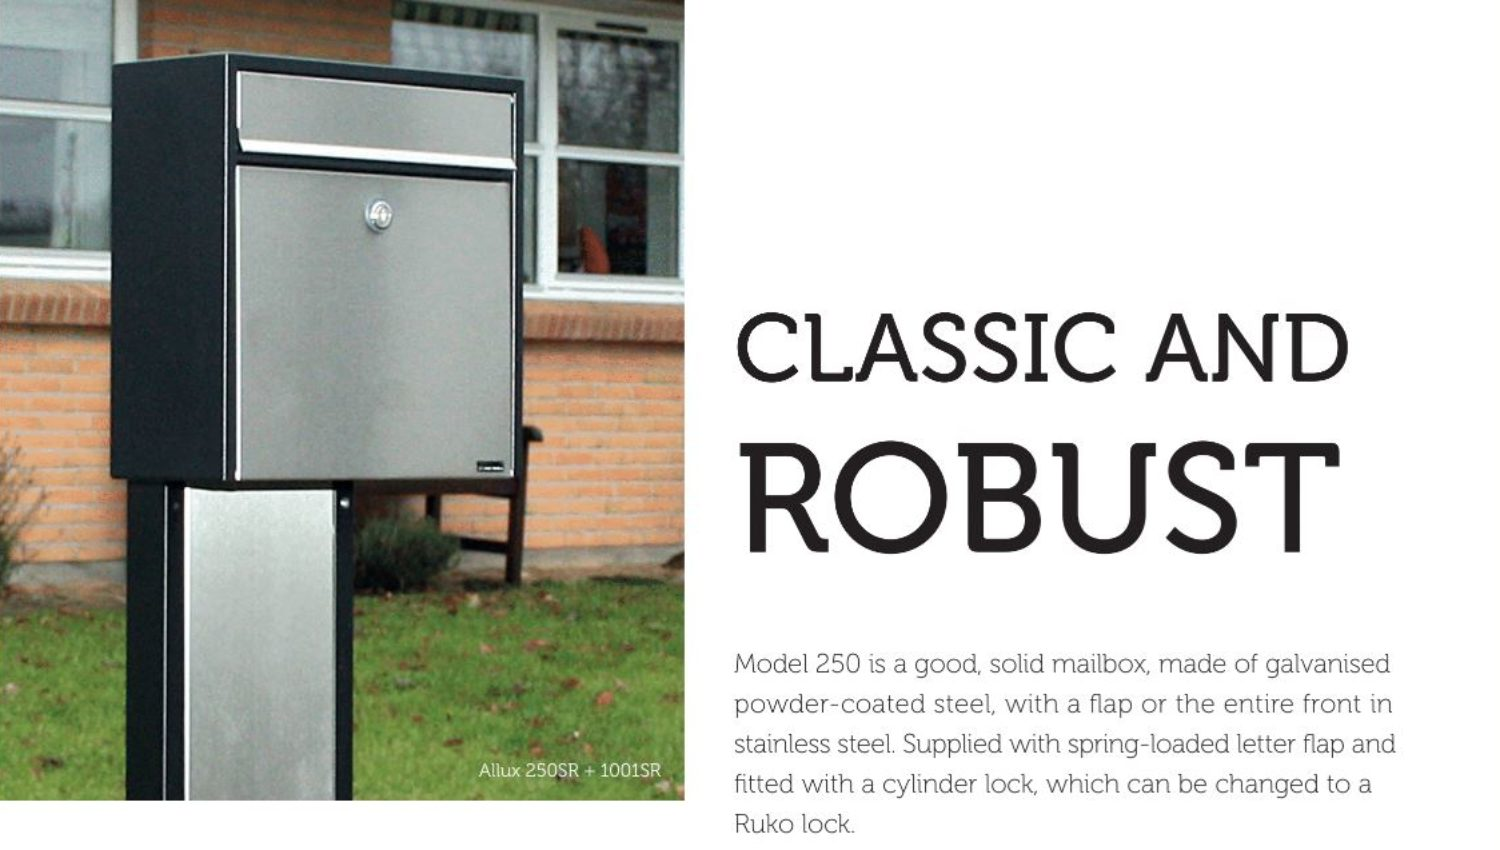 Allux 250 Wall mounted post box